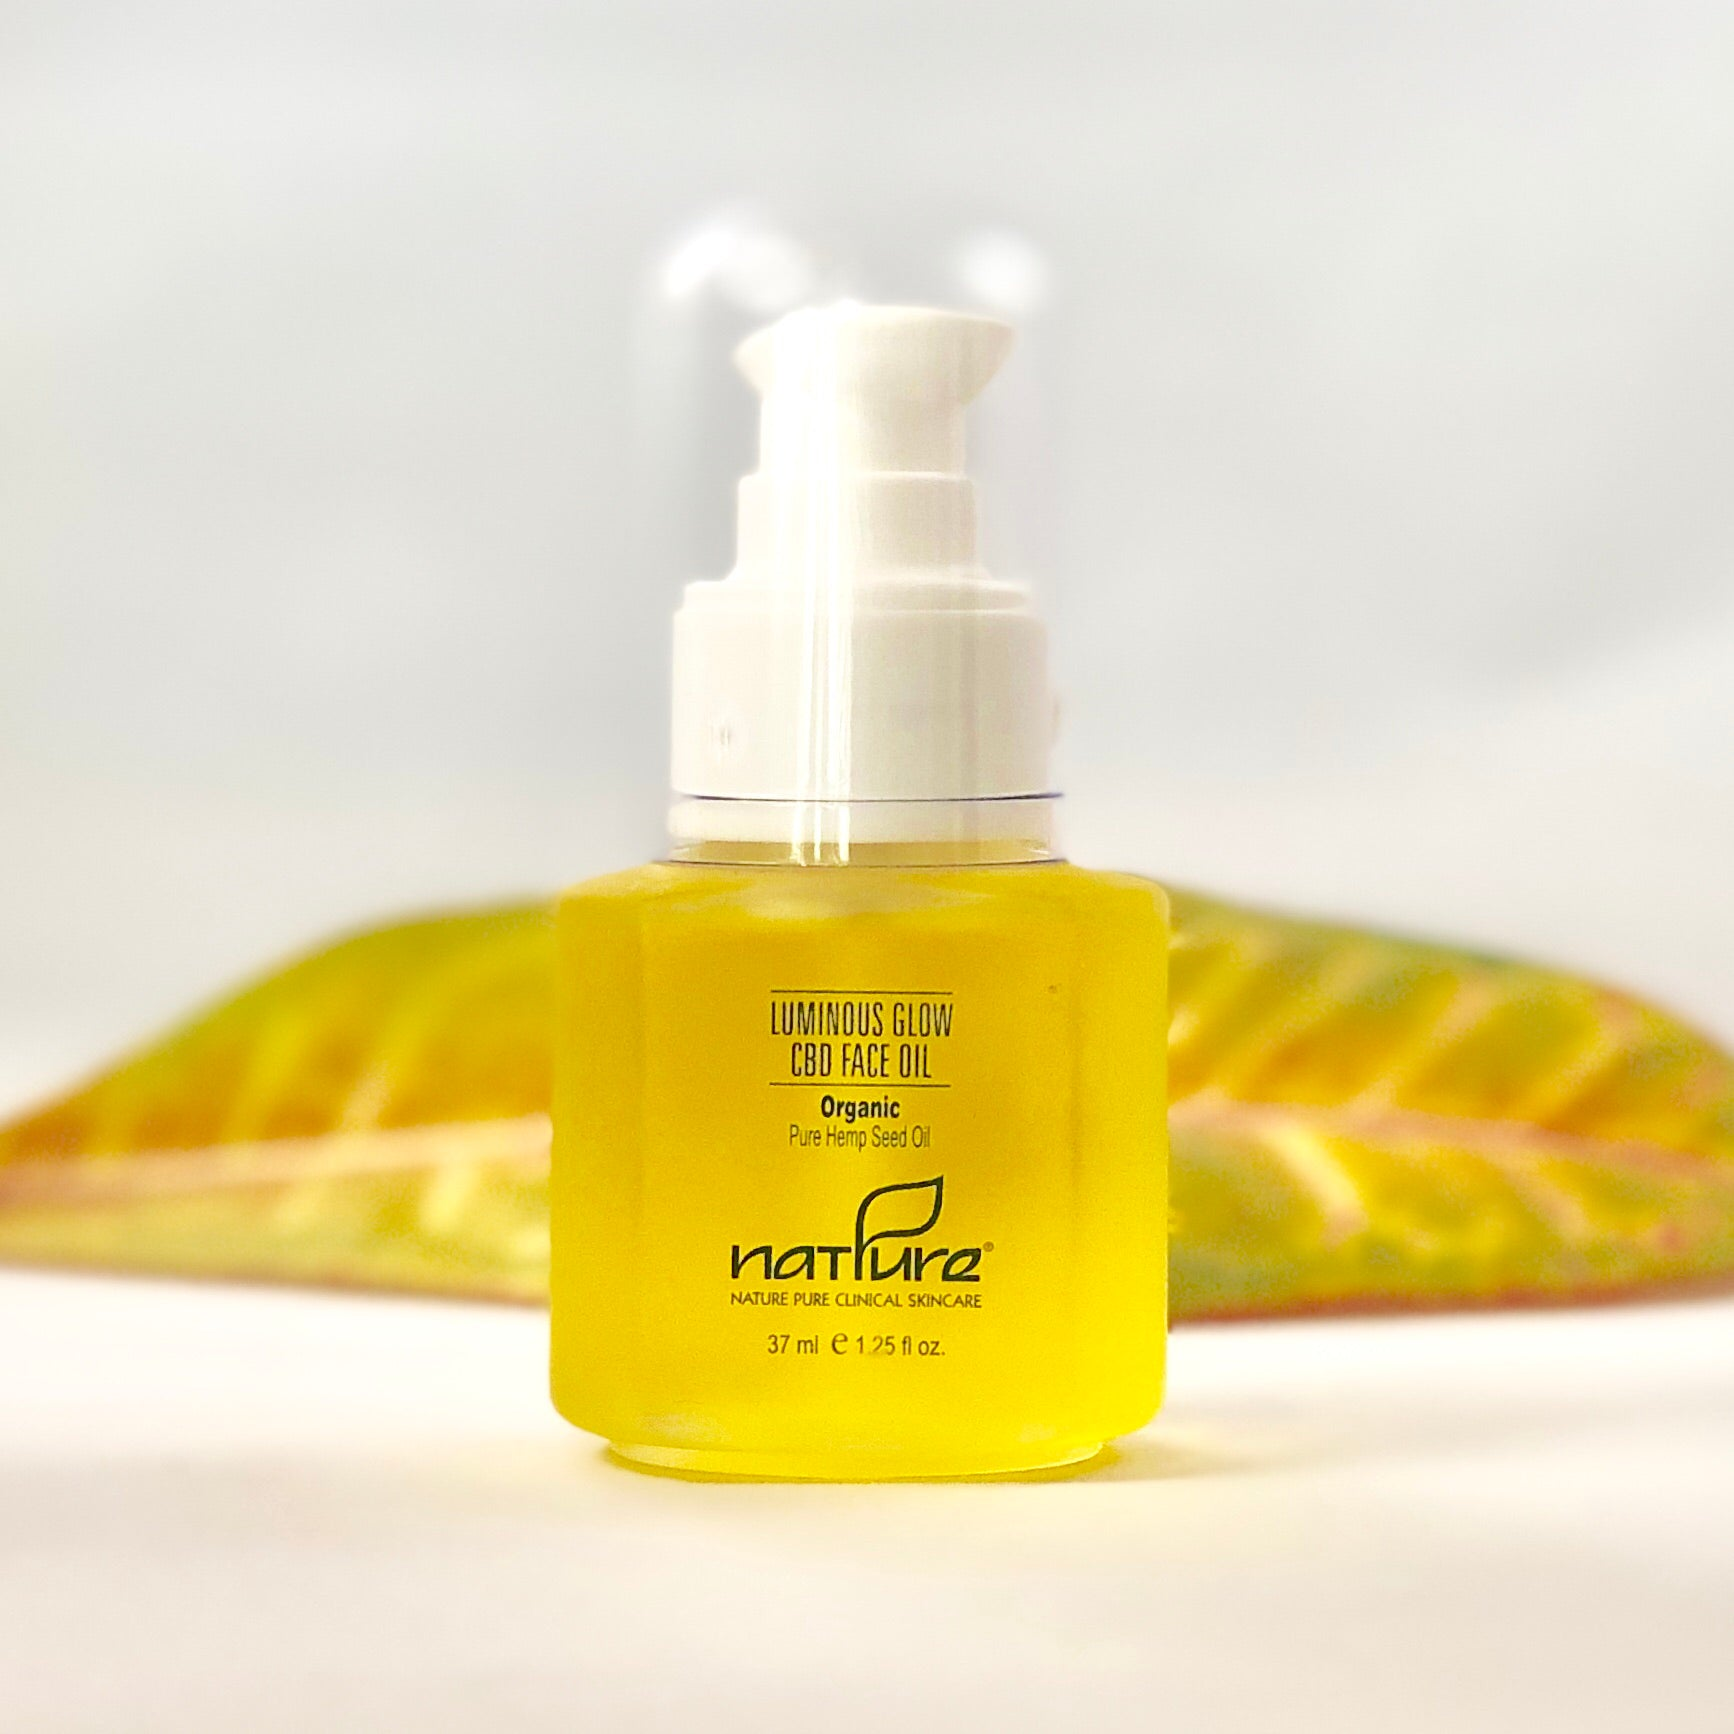 Luminous Glow CBD Face Oil